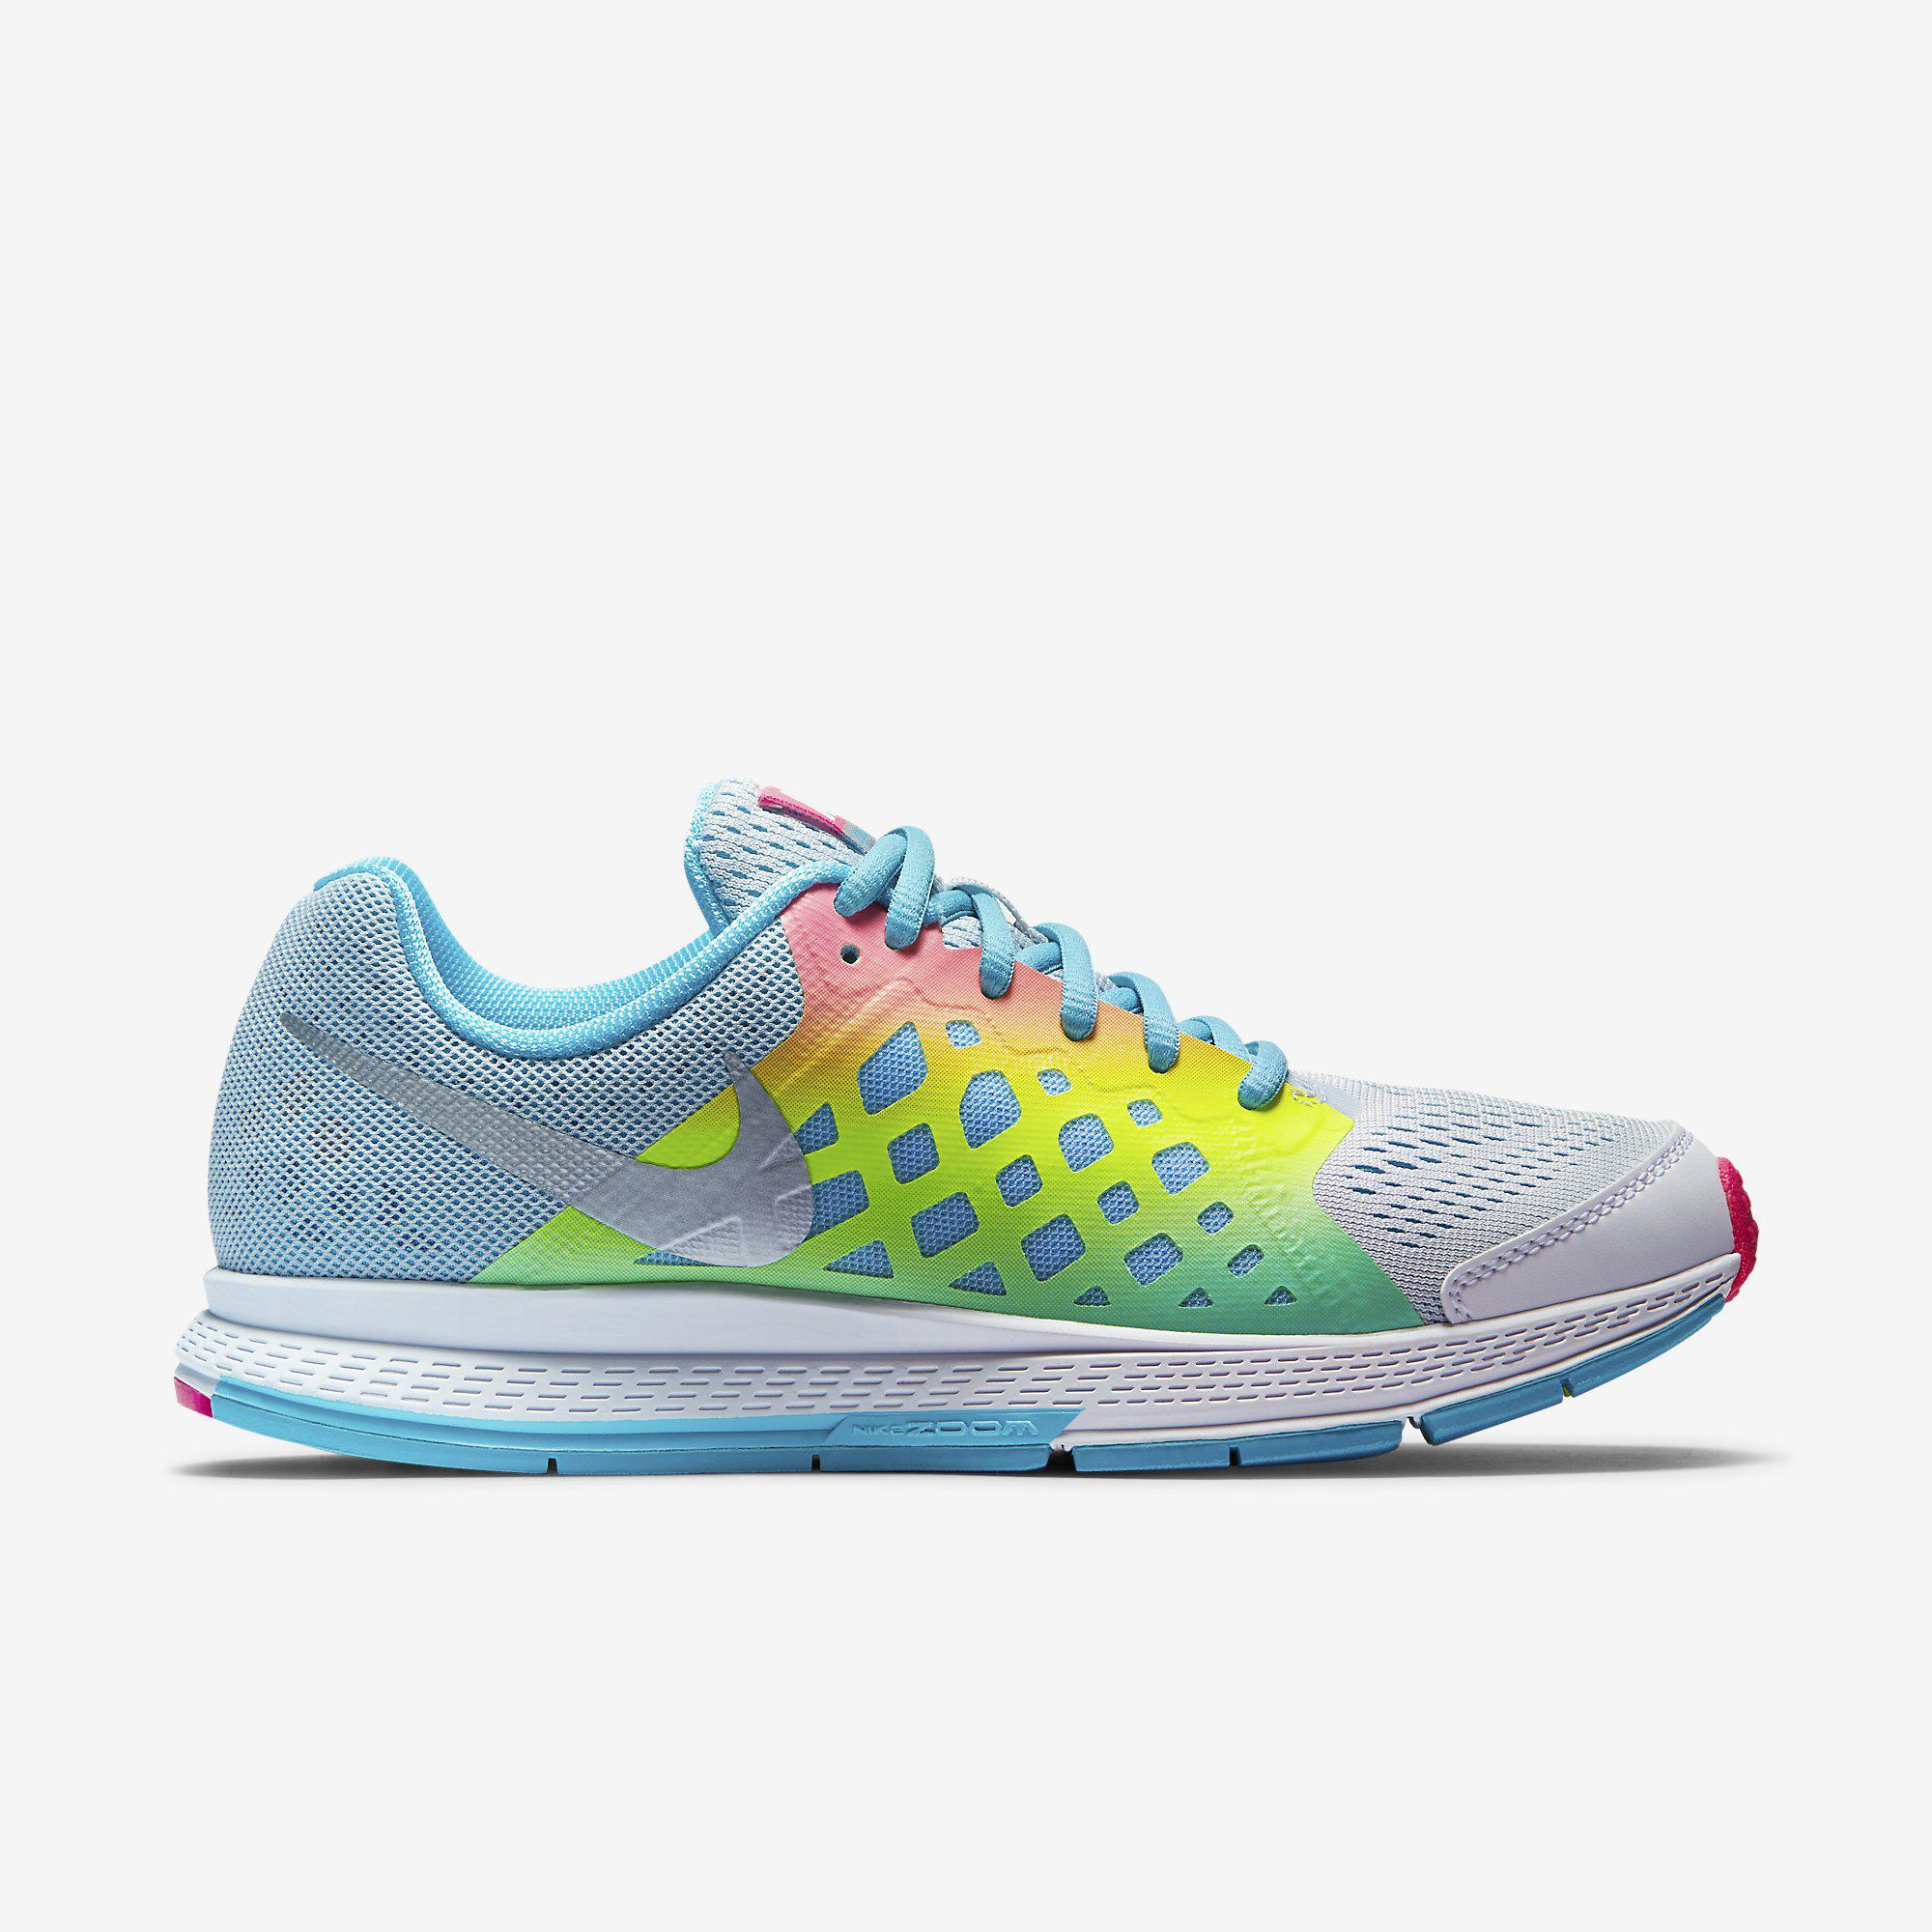 nike air zoom pegasus 31 blue lagoon. Black Bedroom Furniture Sets. Home Design Ideas